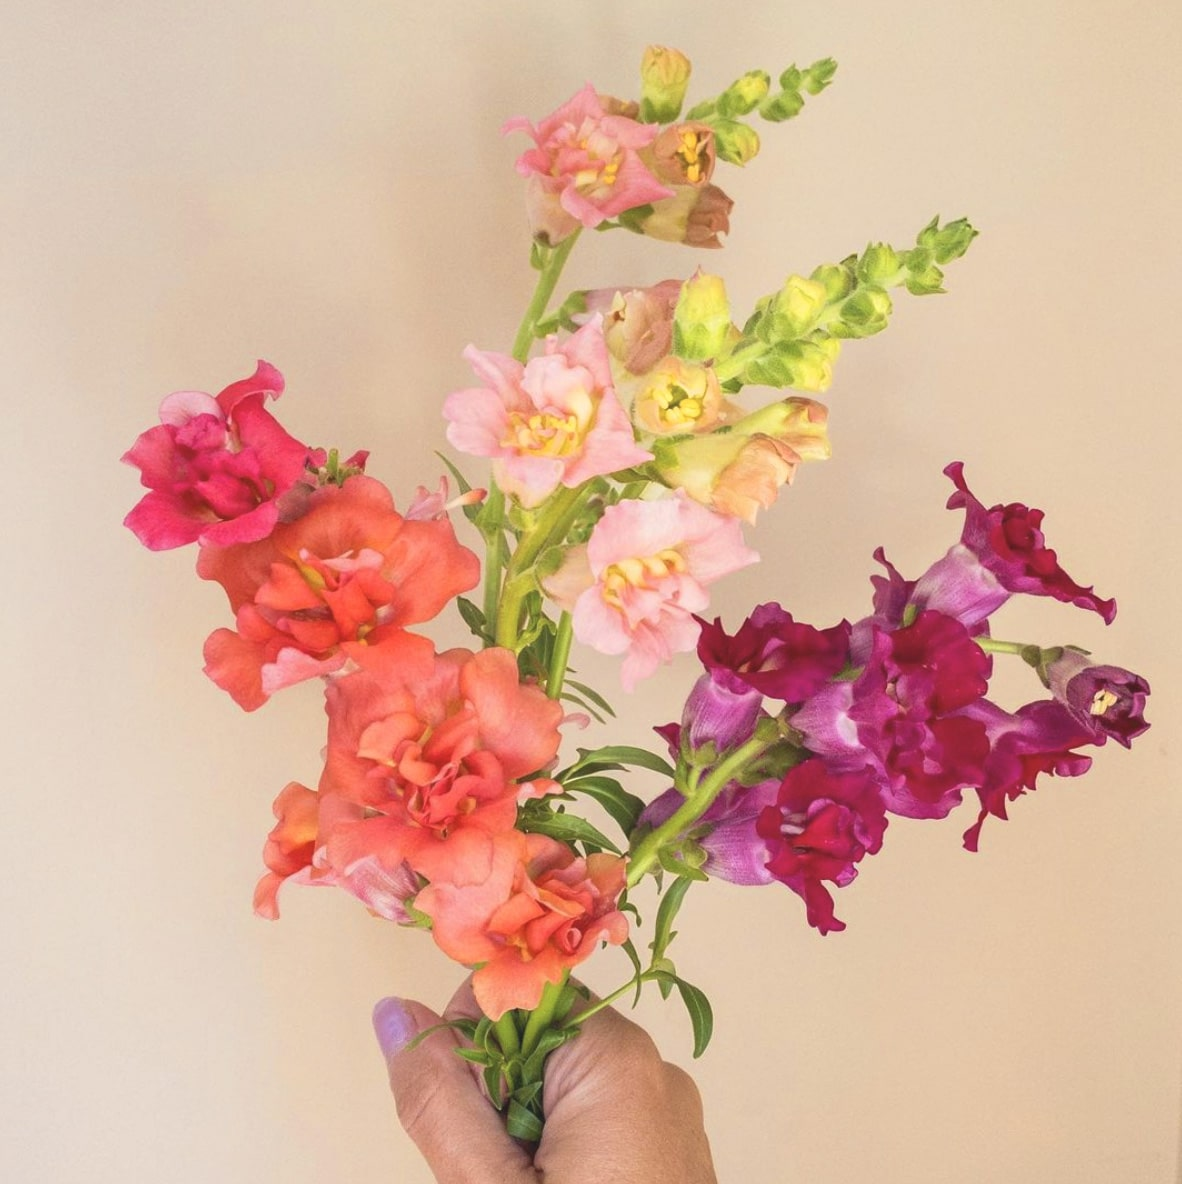 Meanings of Snapdragon Flower